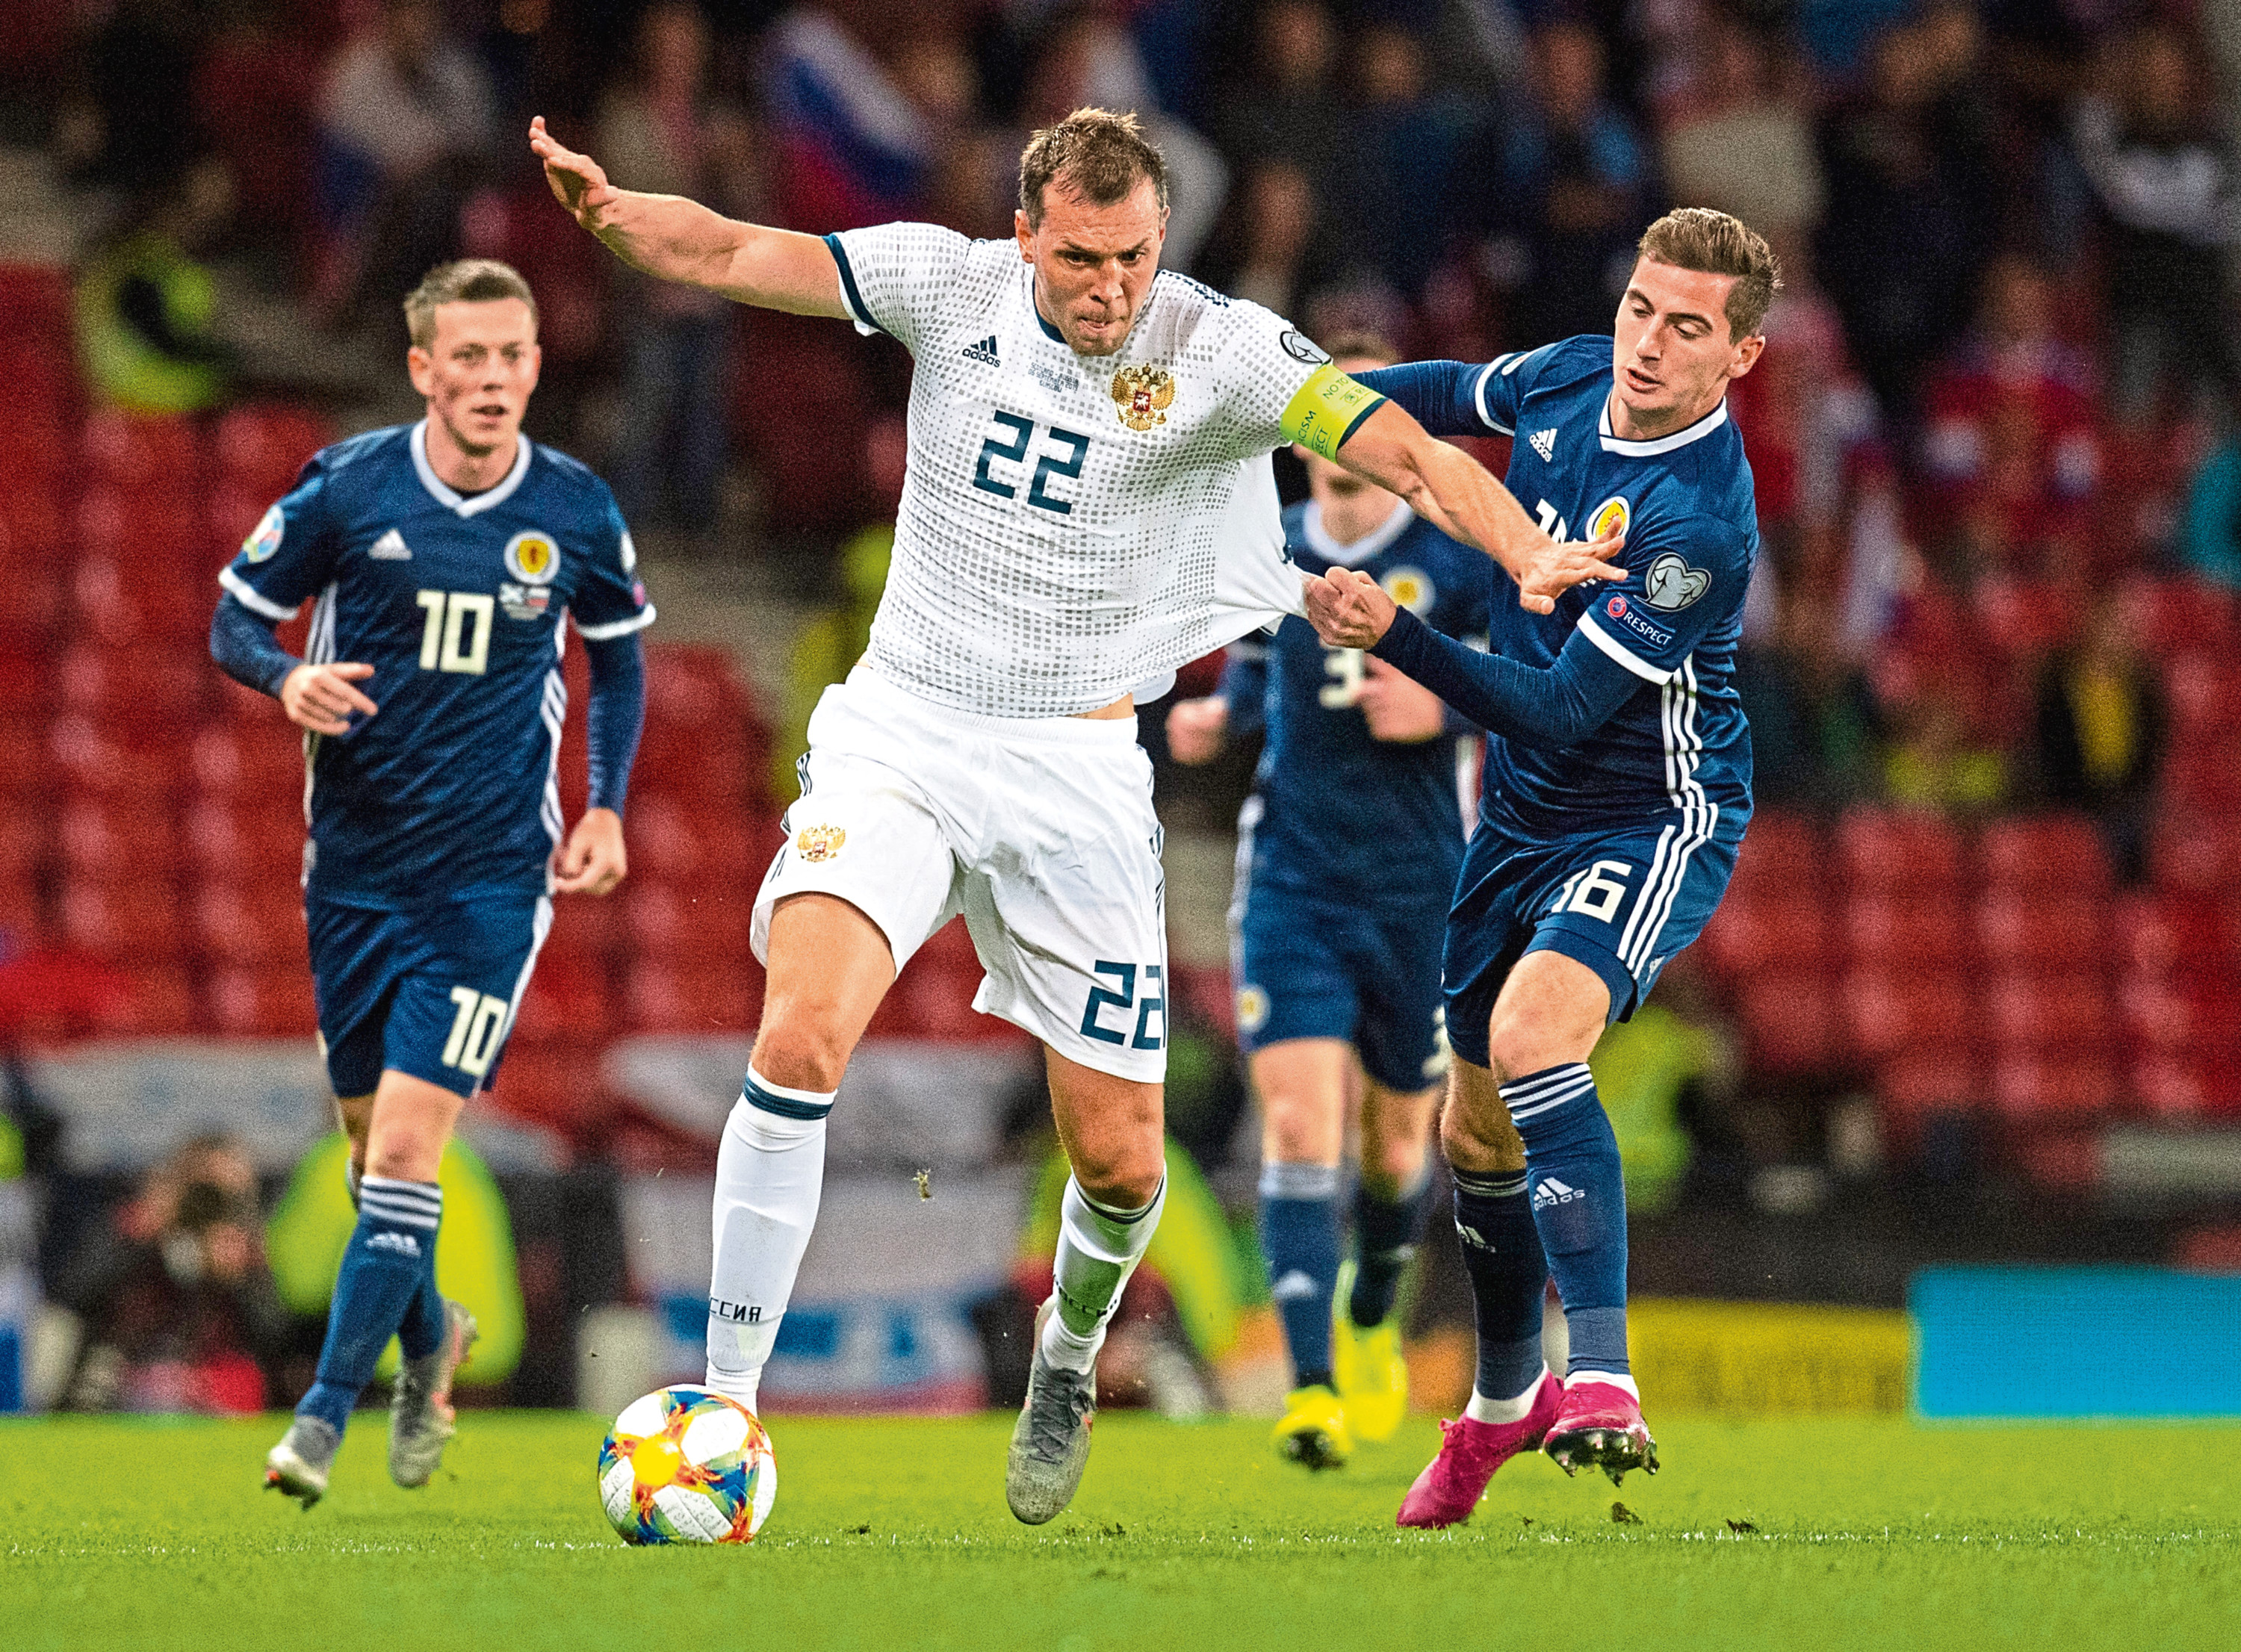 Scotland's Kenny McLean and Artem Dzyuba during the Euro 2020 qualifier between Scotland and Russia at Hampden Park.